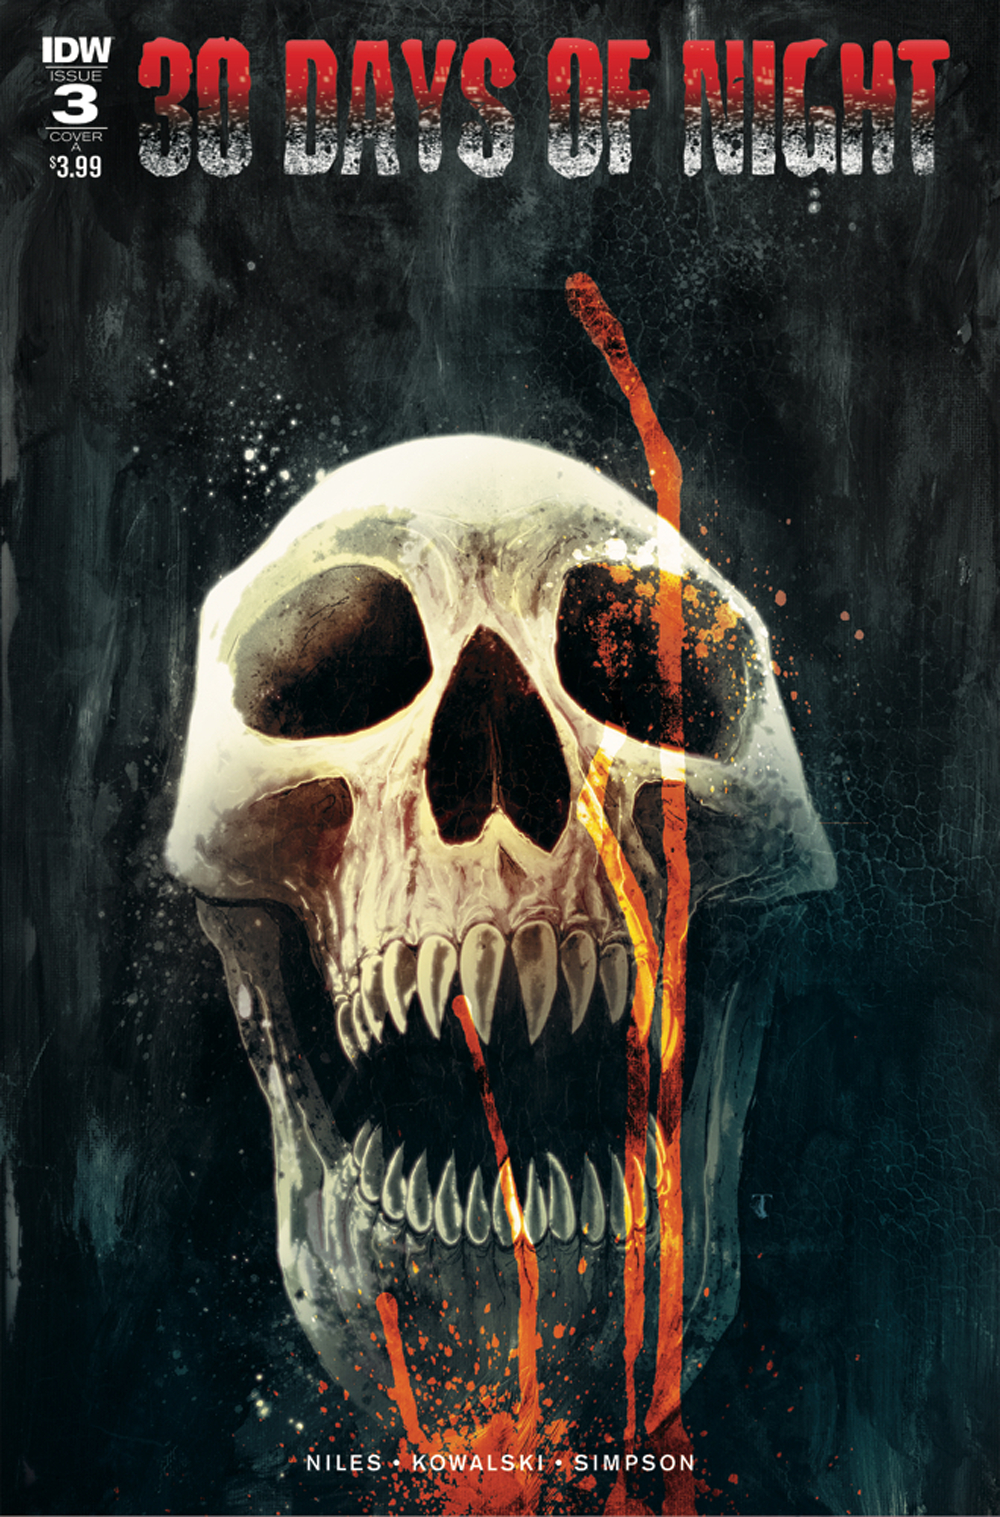 30 DAYS OF NIGHT #3 (OF 6) CVR A TEMPLESMITH